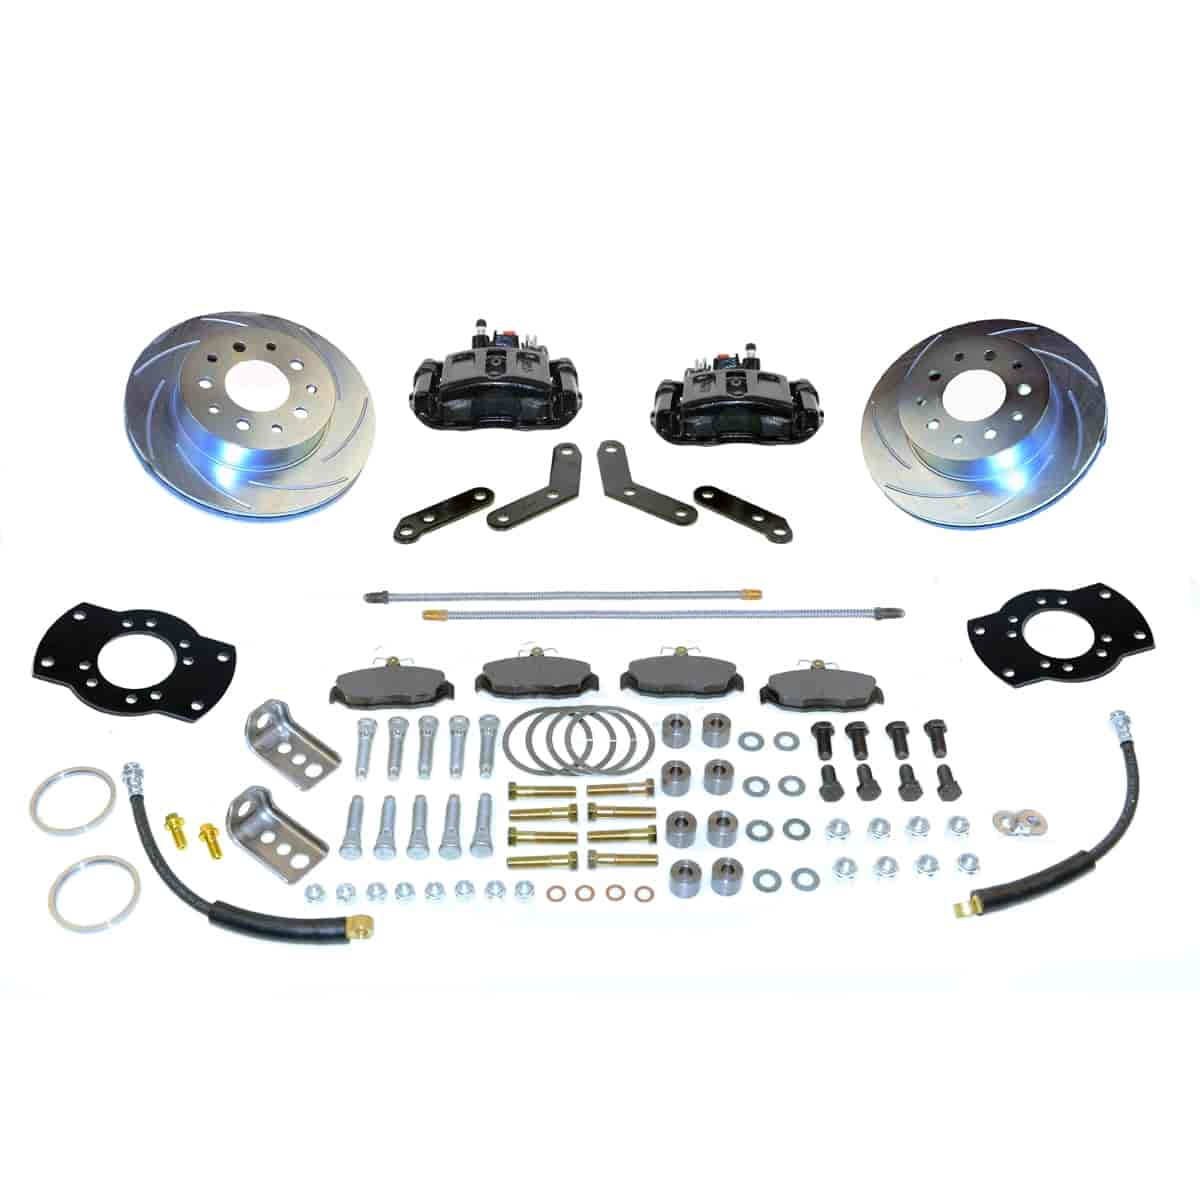 Stainless Steel Brakes A117BK - Stainless Steel Brakes Single Piston Rear Drum to Disc Brake Conversion Kits